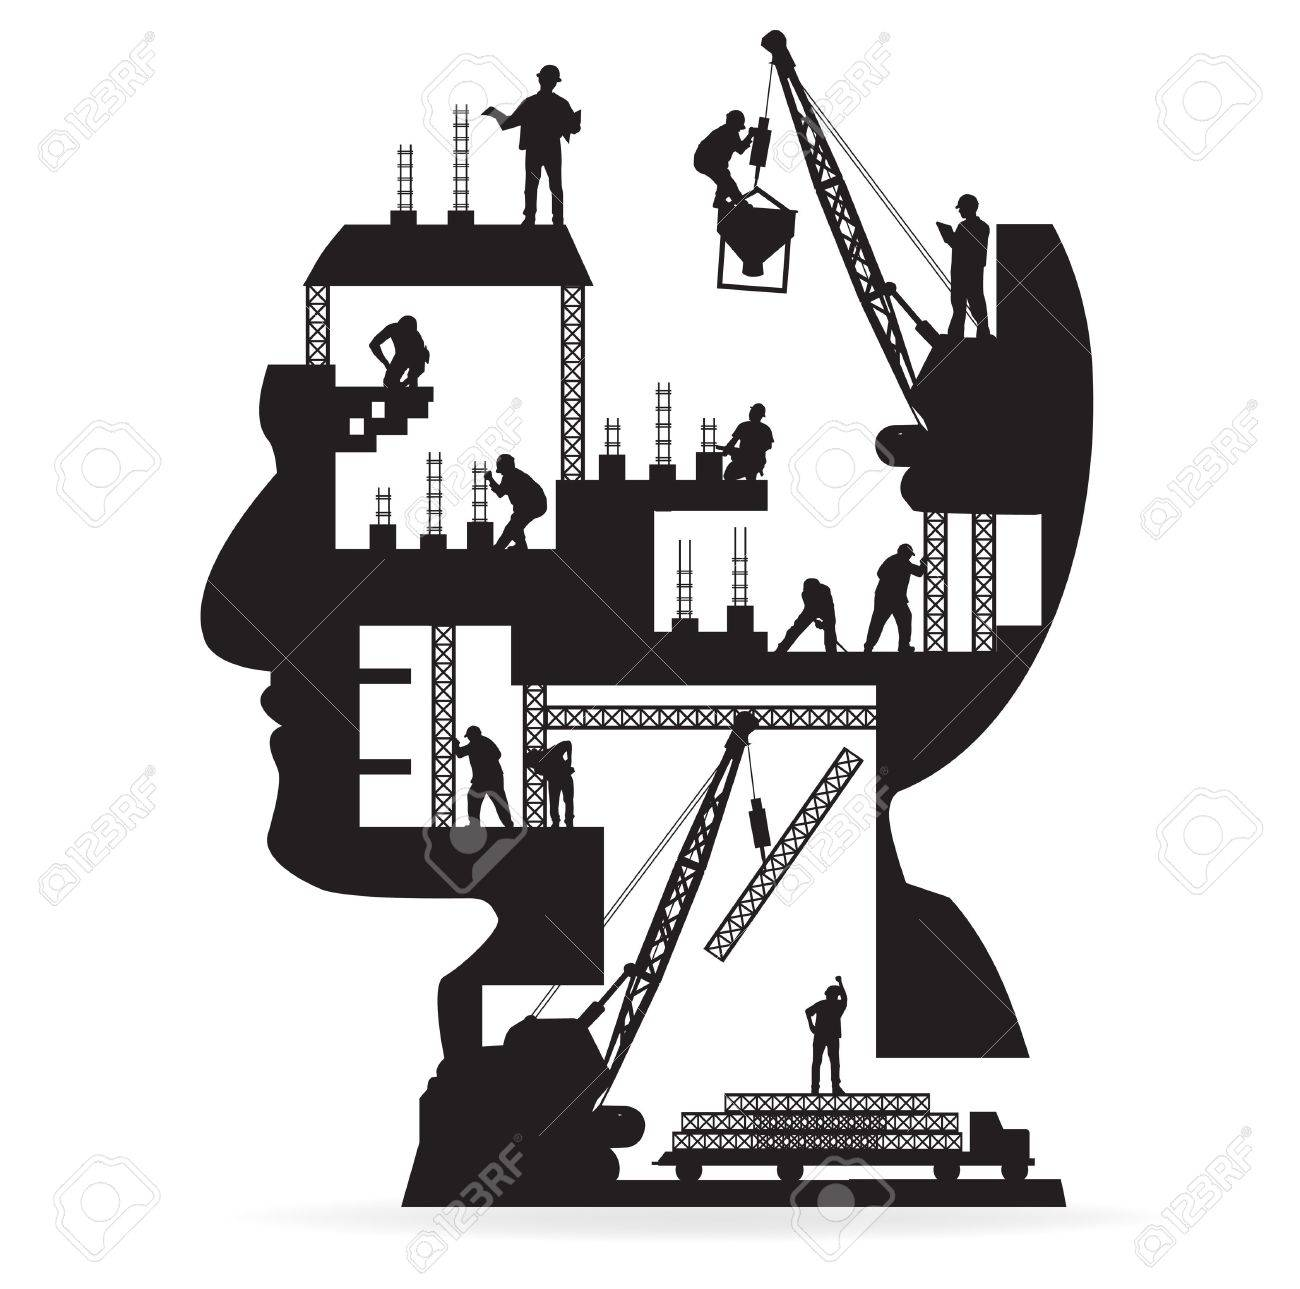 Building under construction with workers in sIlhouette of a head, Vector illustration template design - 19714782